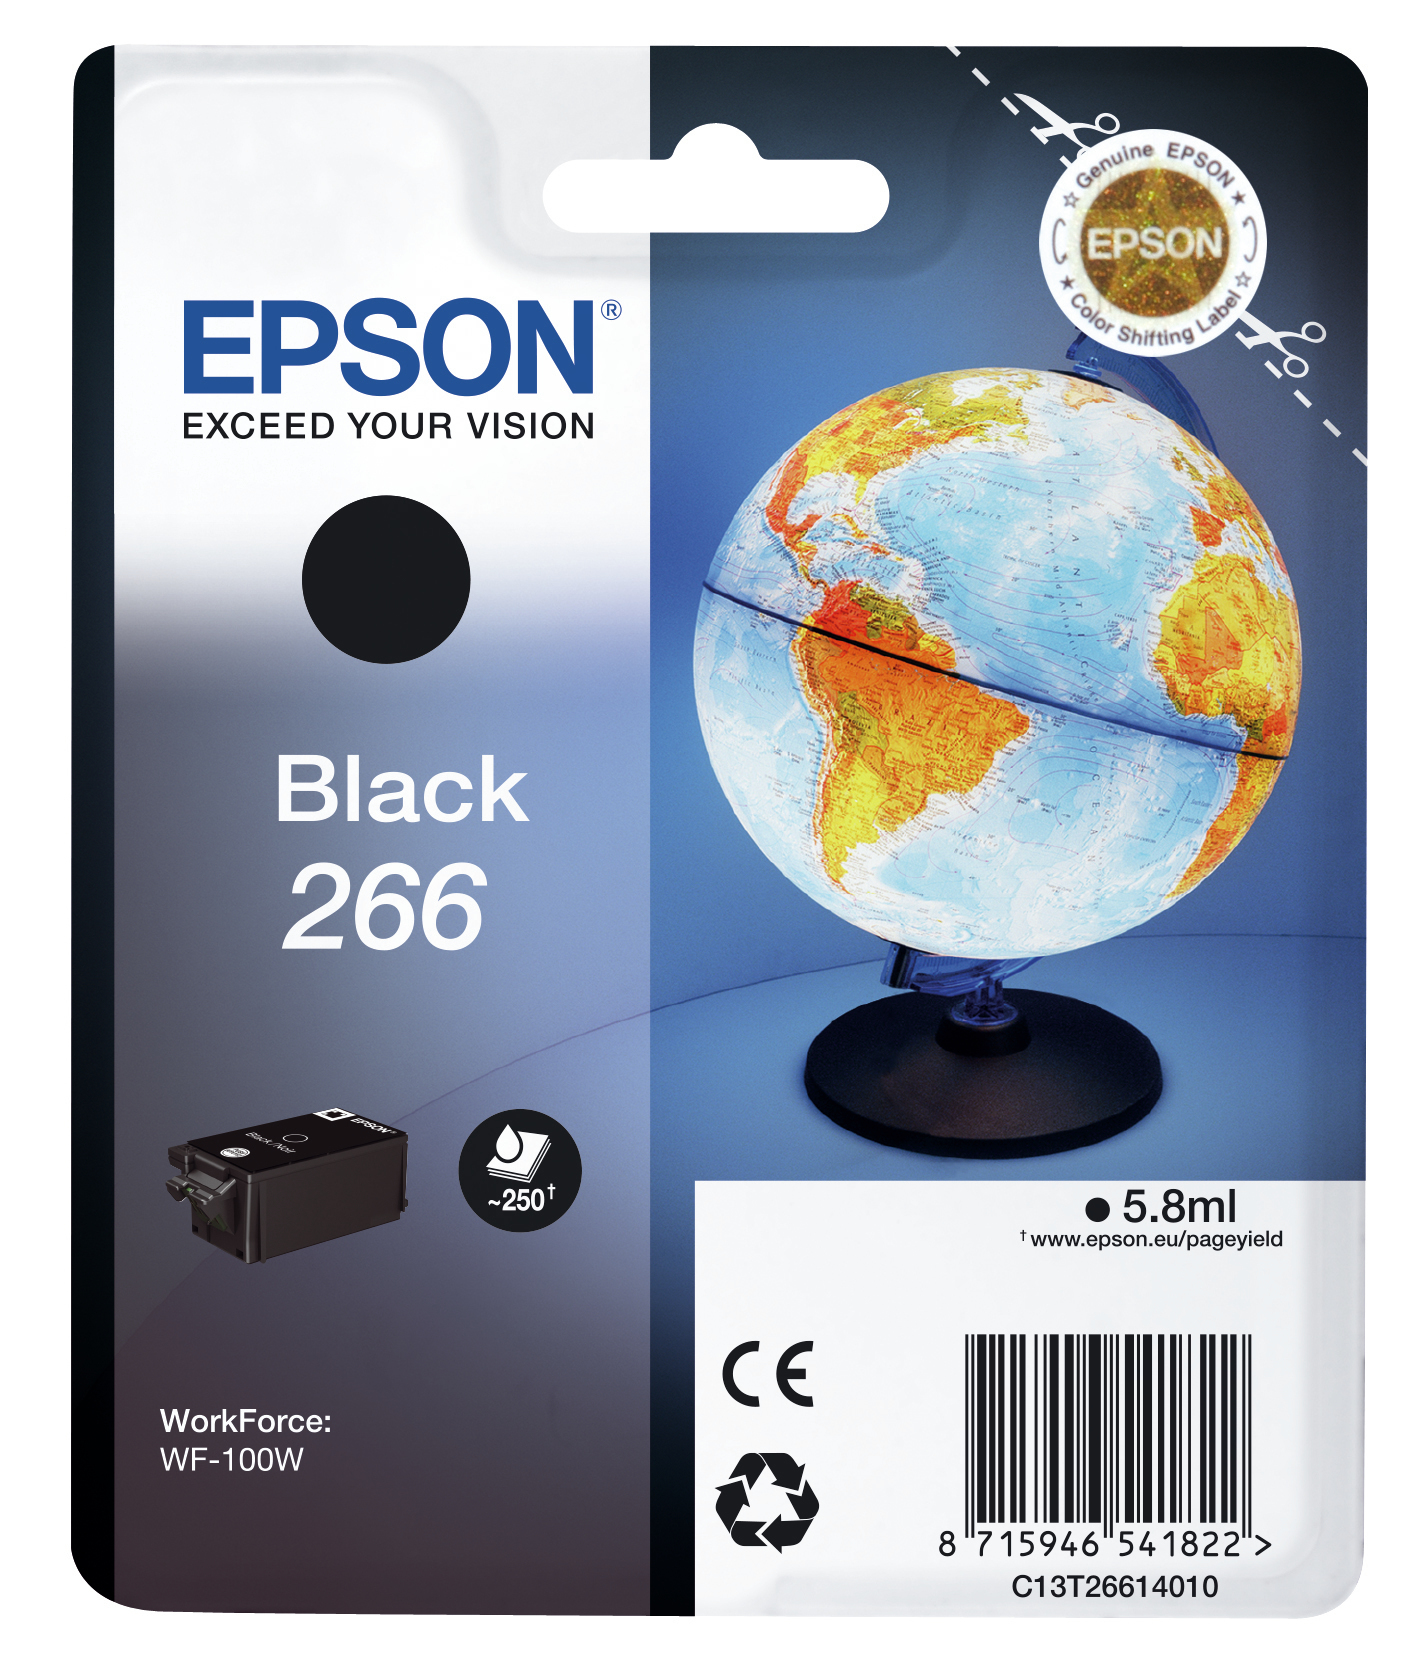 epson Wf100w Black Ink Cart 5.8ml C13t26614010 - AD01